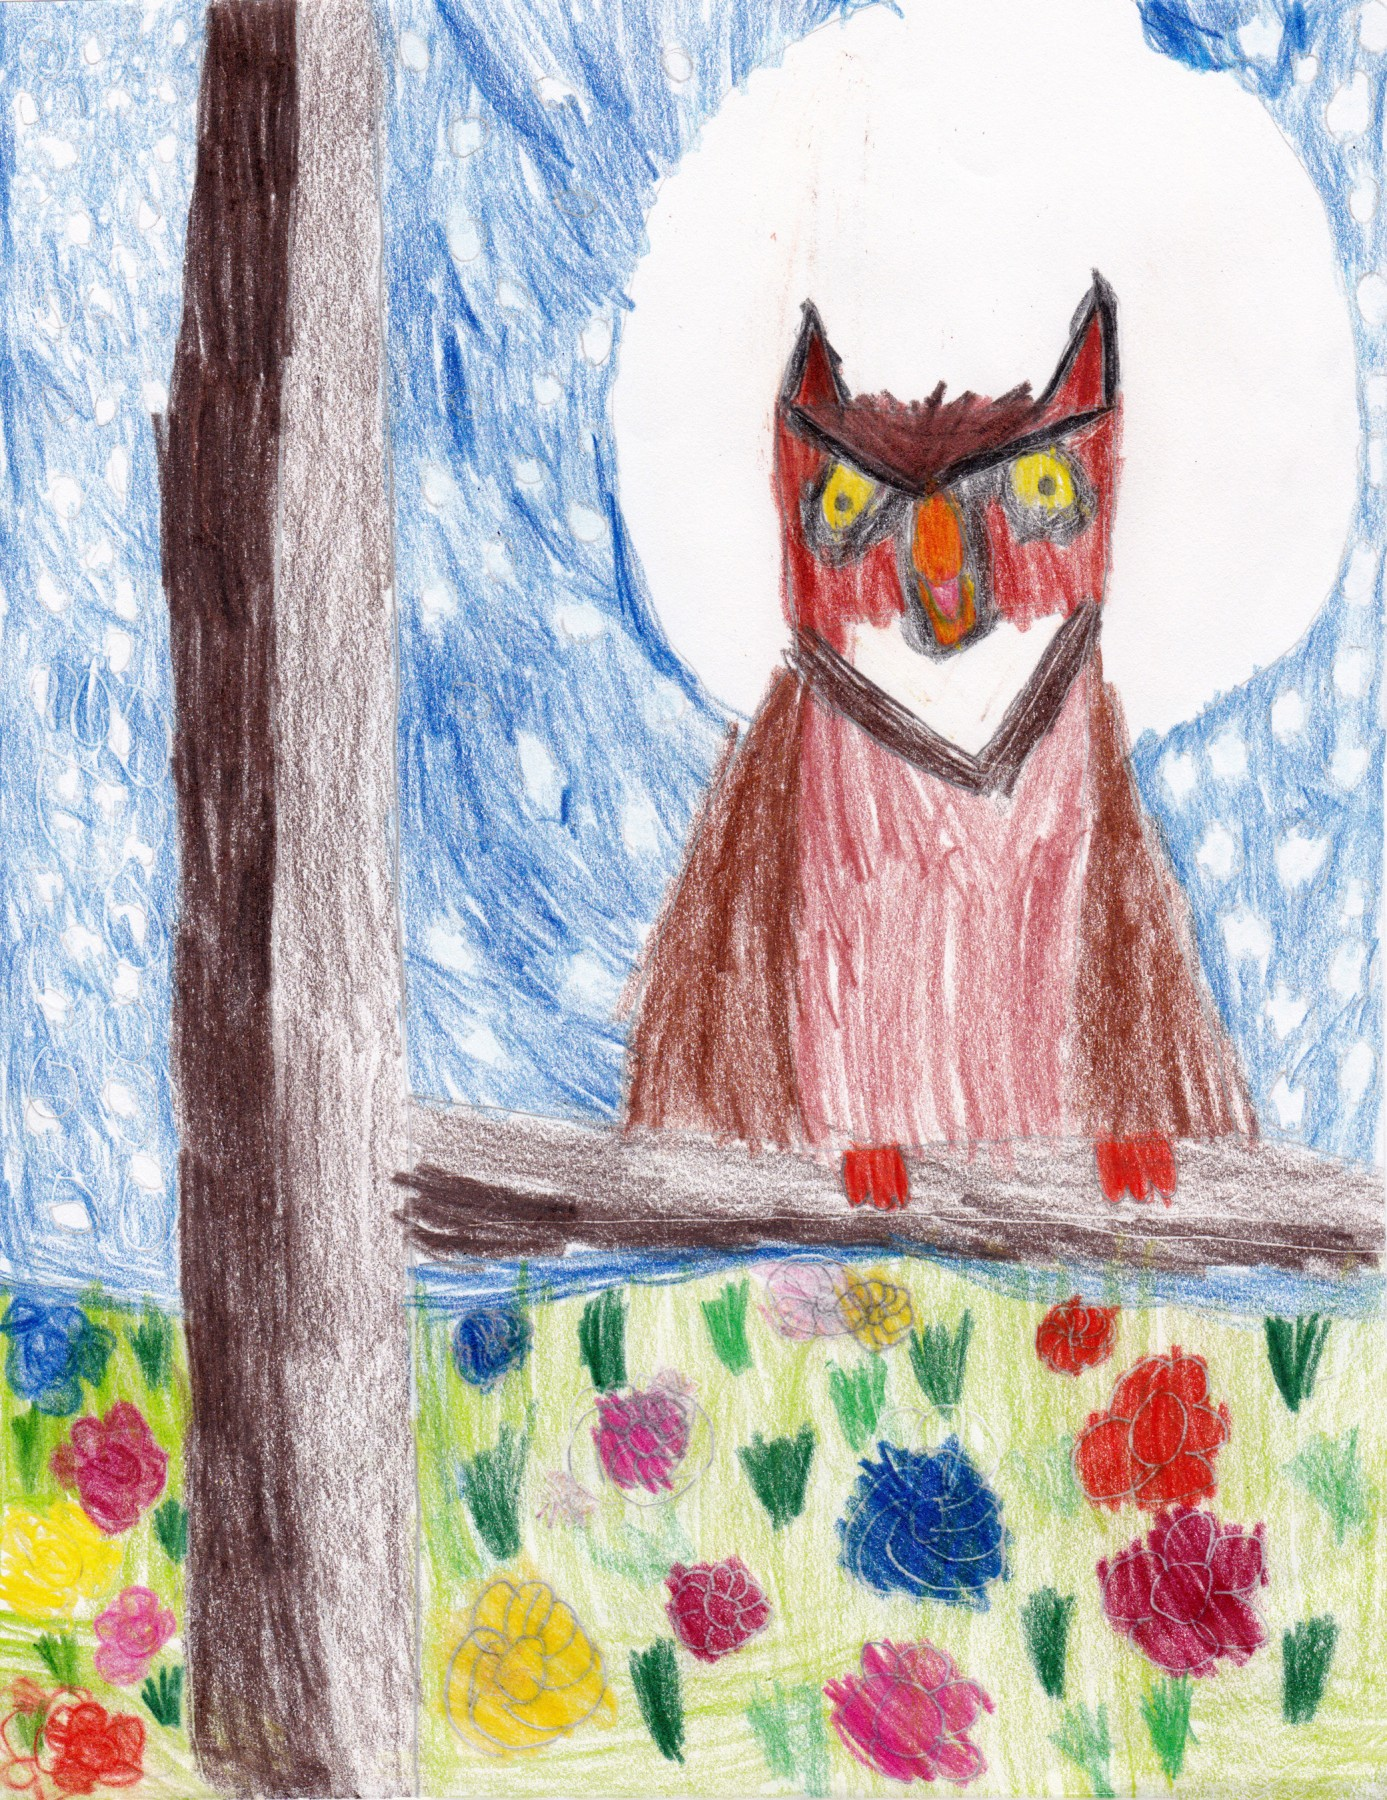 Owl in Tree with Moon Behind, by Eliska M. Crowell - Age 6